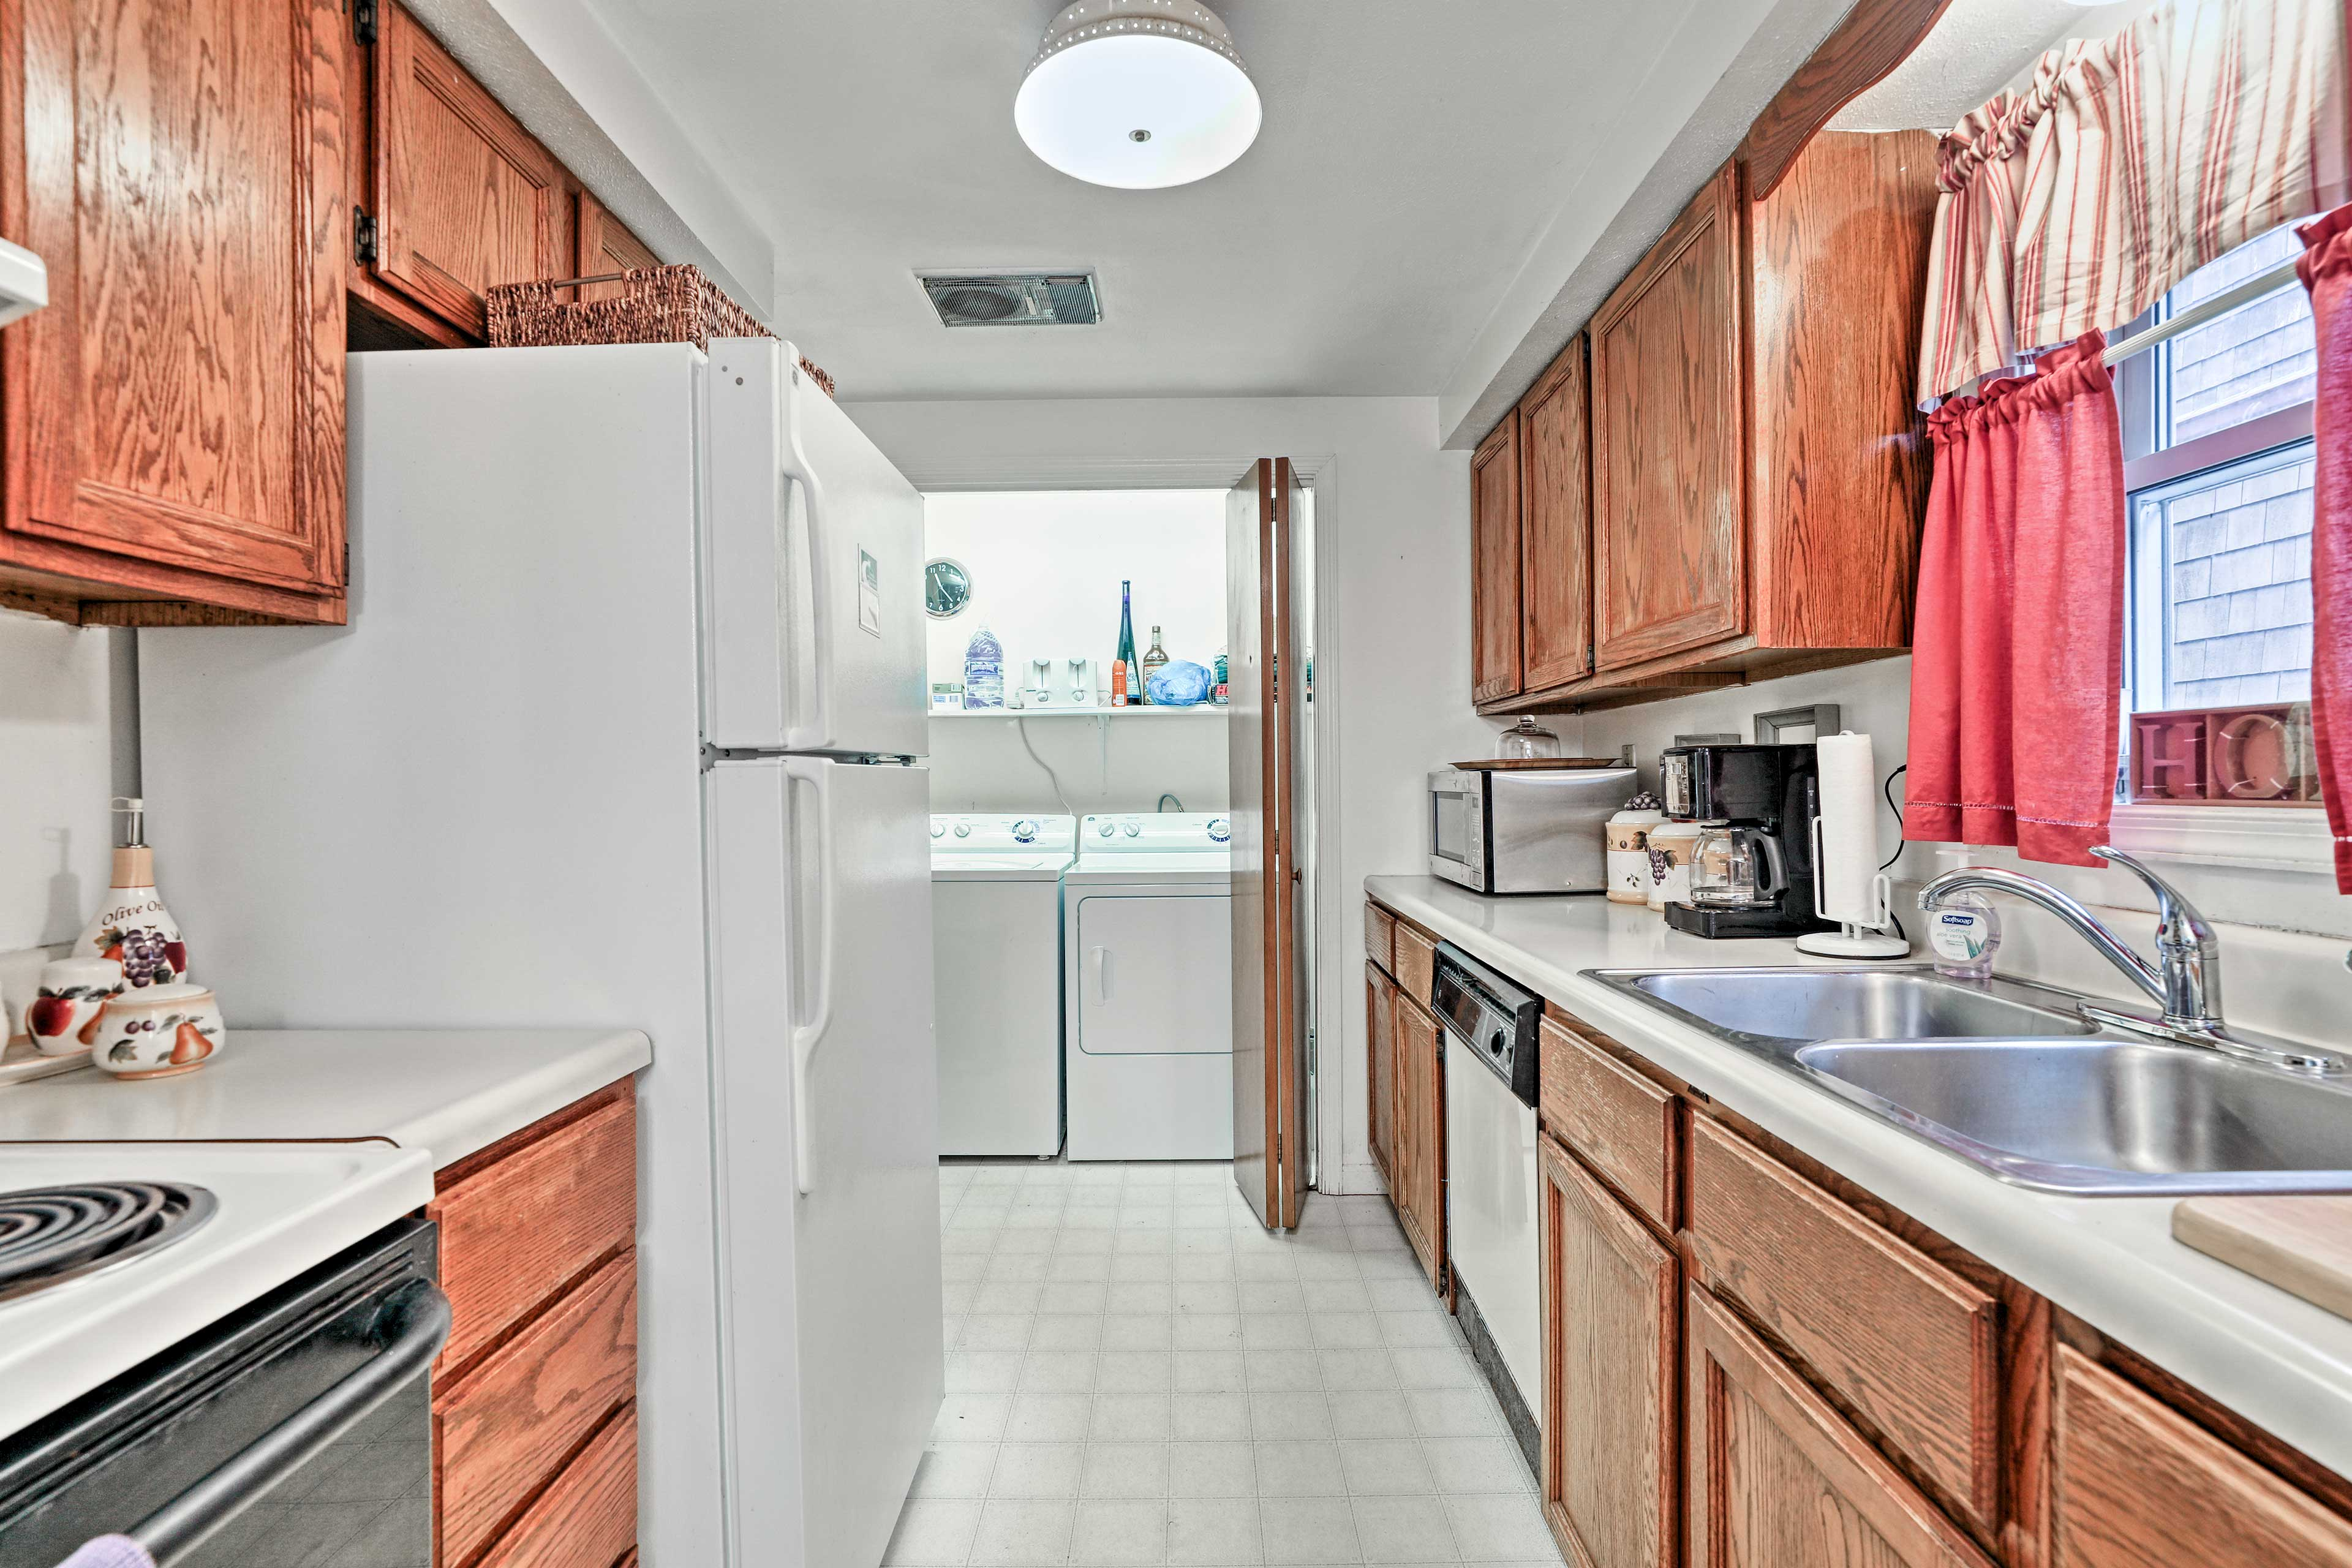 The kitchen is fully equipped with updated appliances and ample counter space.